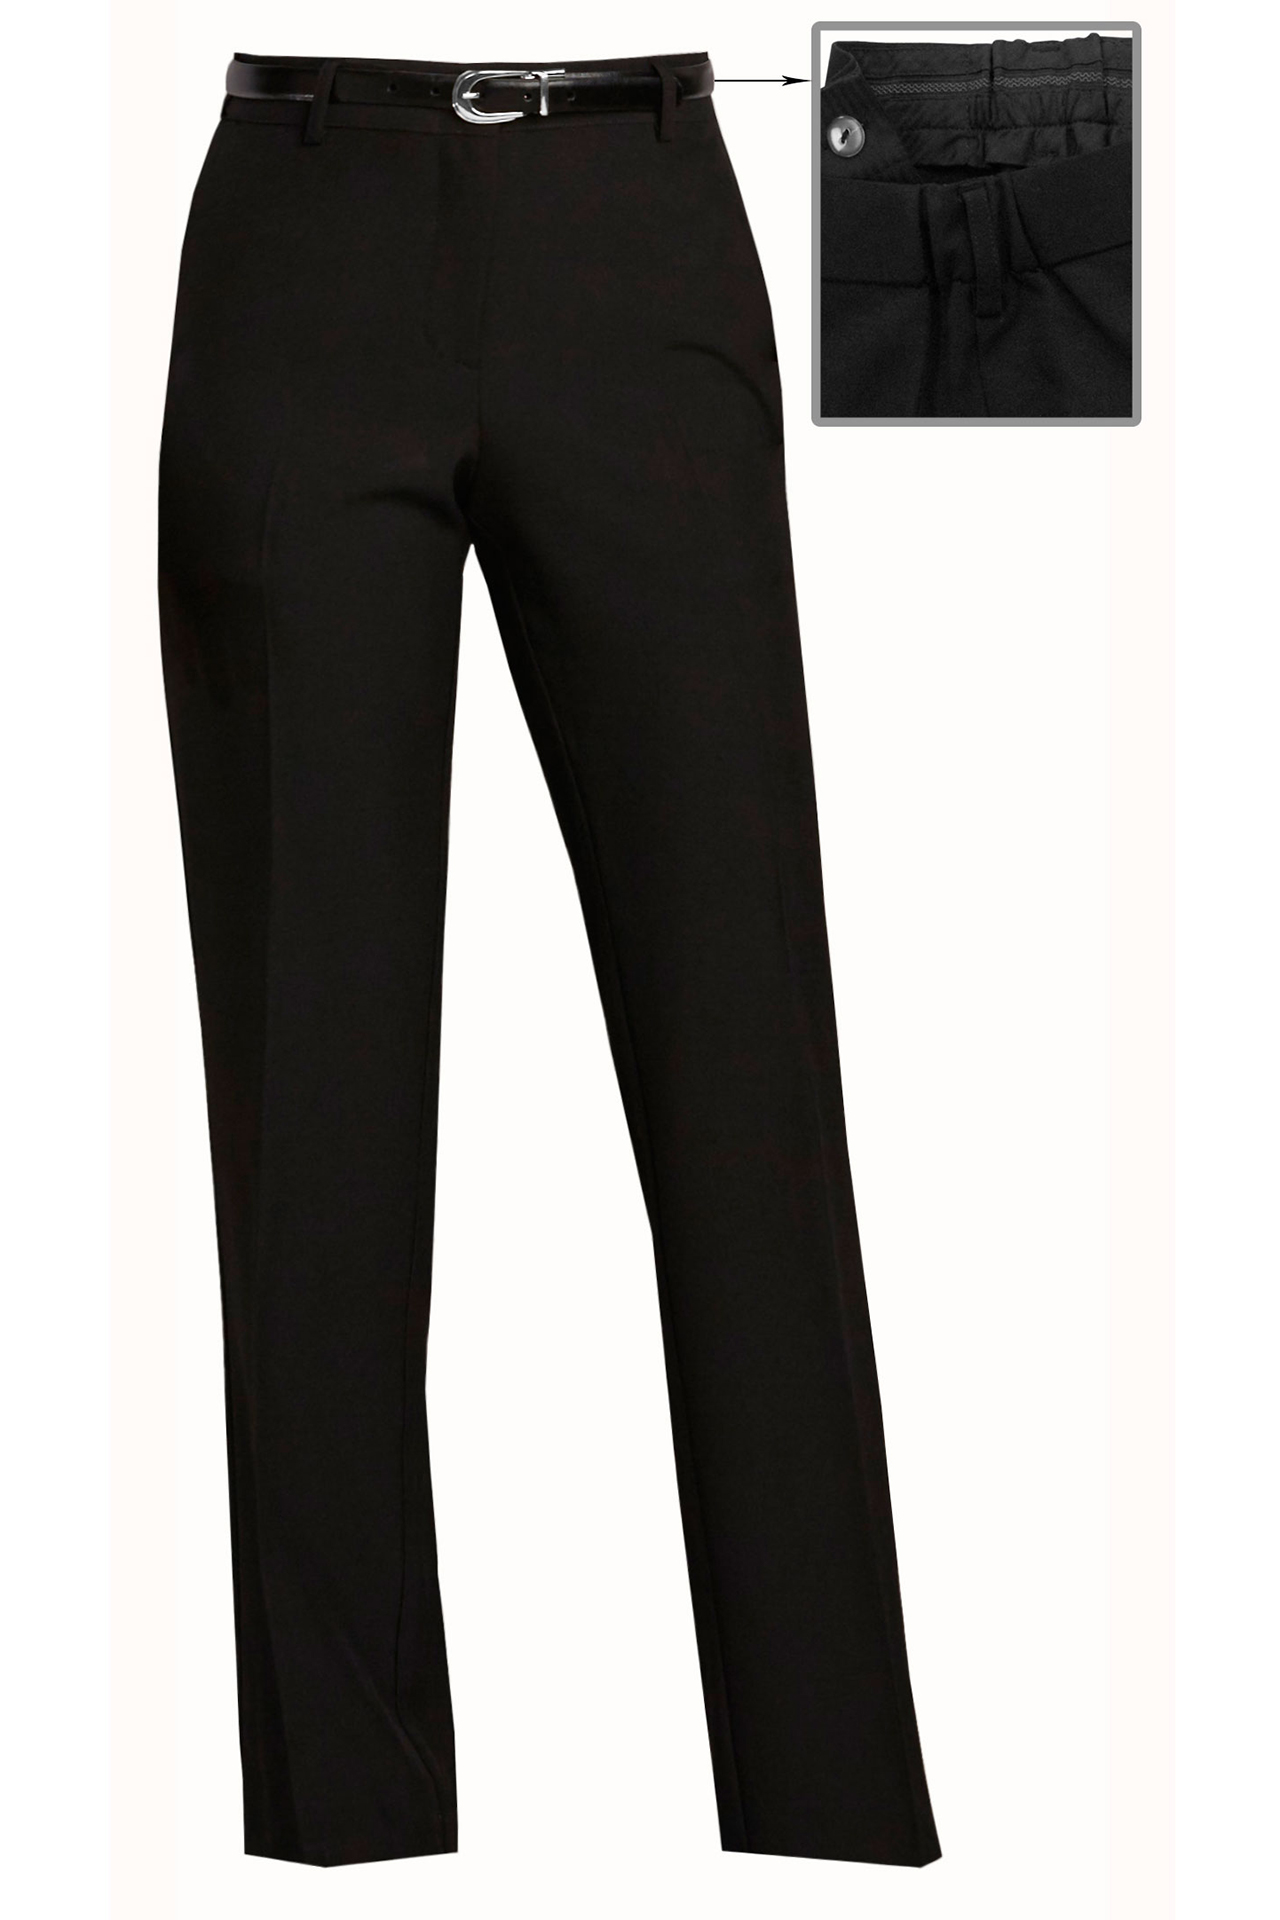 Womens Hospitality Pants, No Pockets-